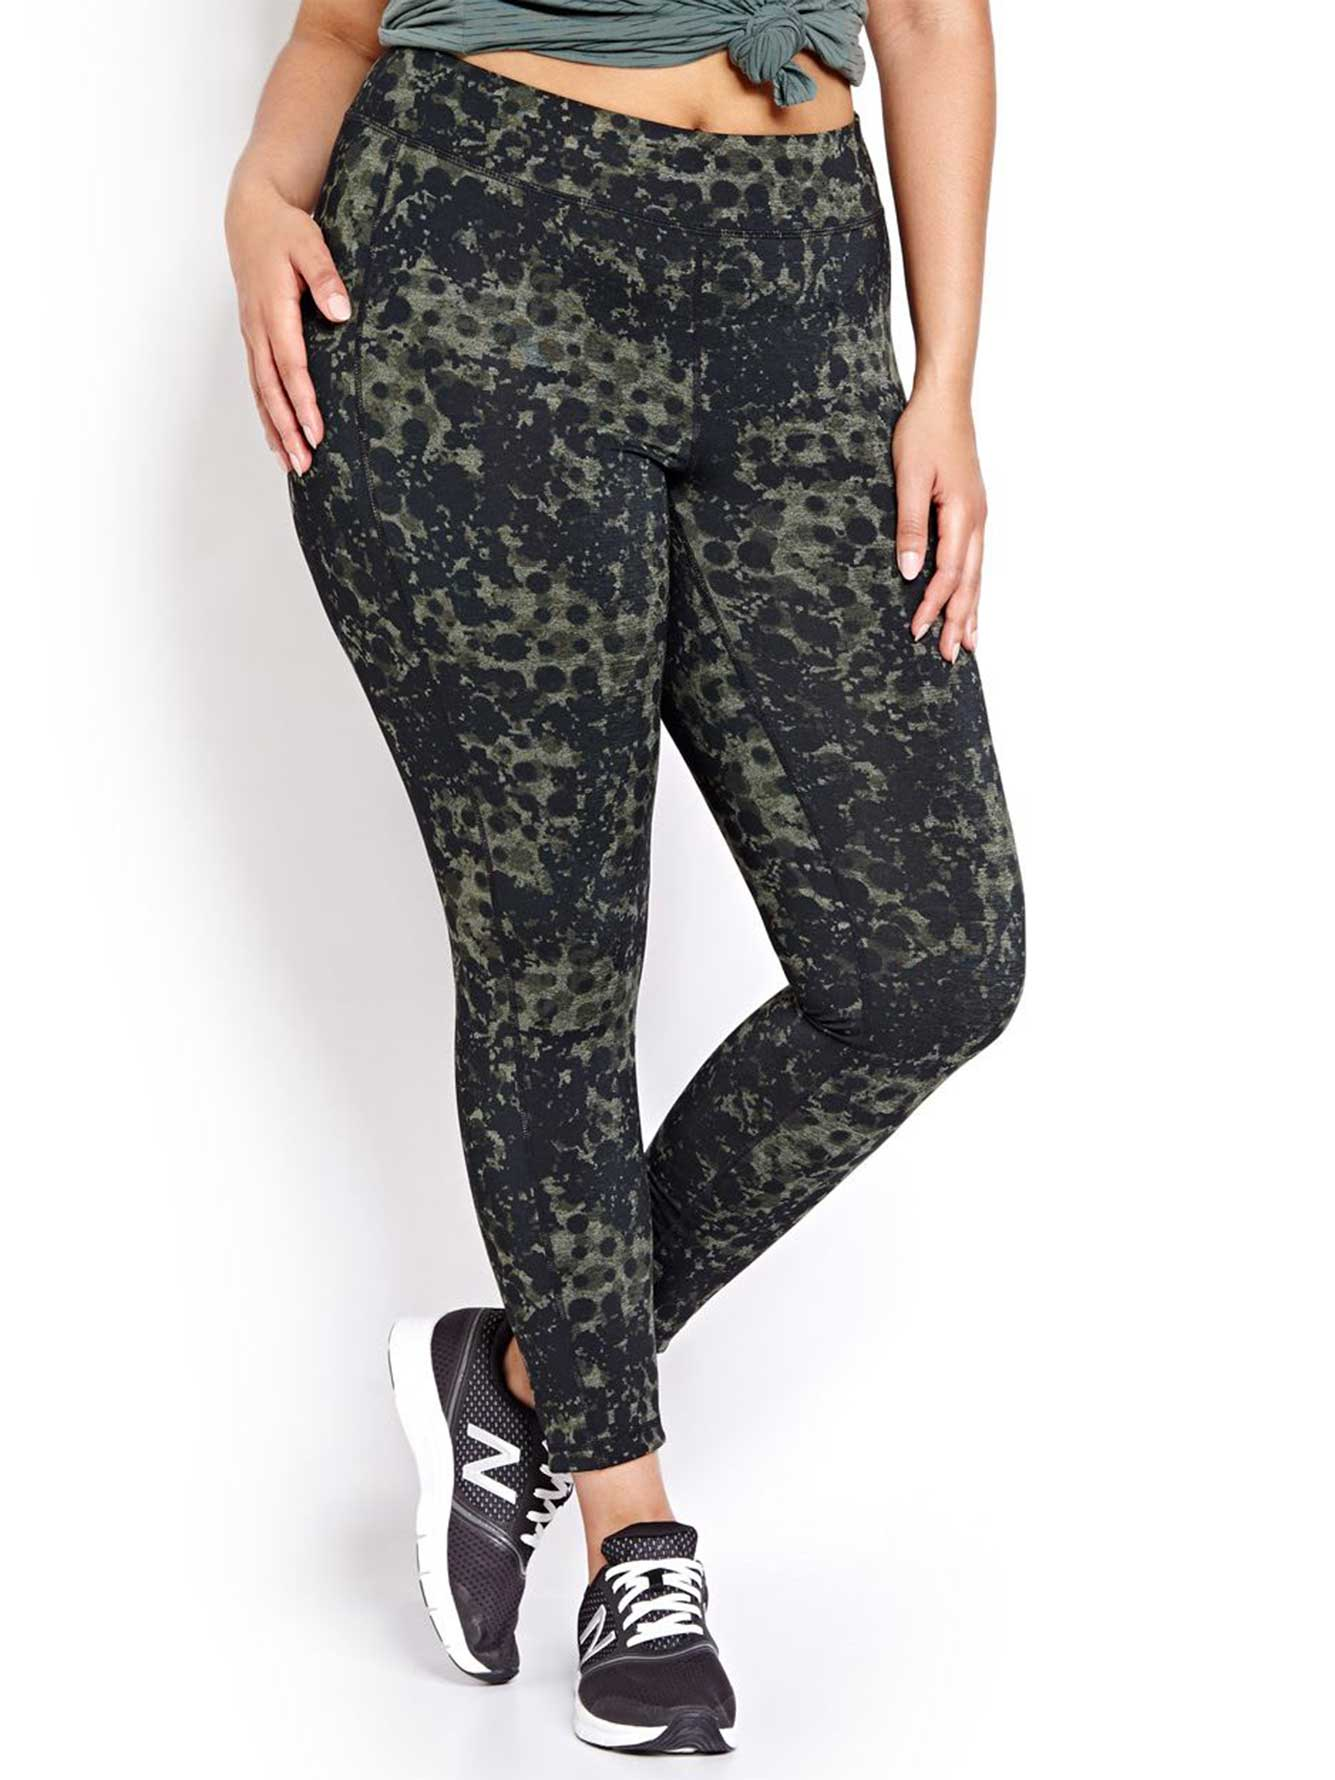 Nola Reversible Legging